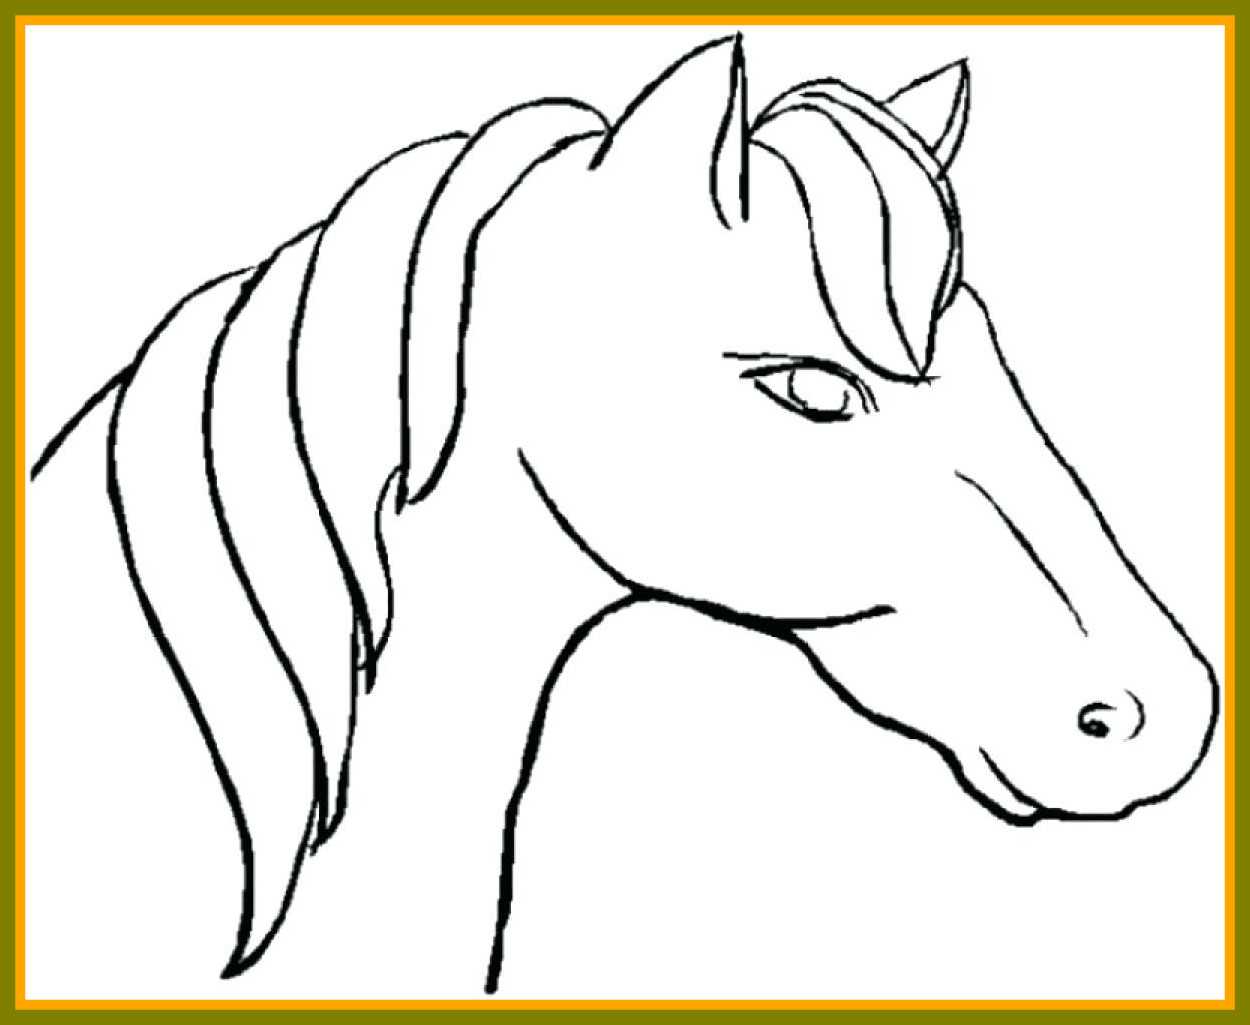 1250x1025 Fascinating Cute Rearing Horse In Coloring Page For Line Art Pict